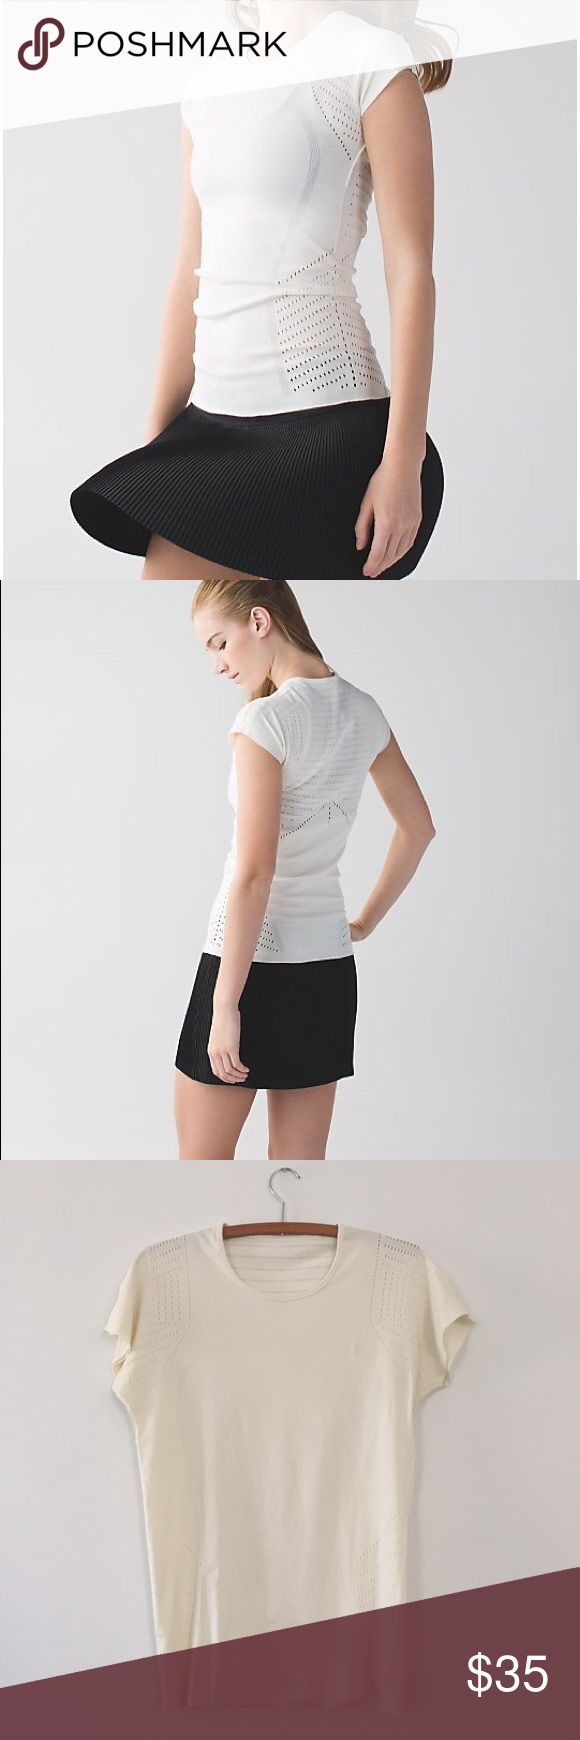 Lululemon Time Warp Top FROM LULU: Create a one-of-a-kind short sleeve tee that feels weightless, doesn't chafe, and gives us room to breathe when we're on the run? Challenge accepted. We engineered this shirt with lightweight fabric and plenty of ventilation for airflow on the go. Mission accomplished.  CONDITION: gently worn, with some staining on sleeves and back from running through mud. Color is off white/cream. lululemon athletica Tops Tees - Short Sleeve